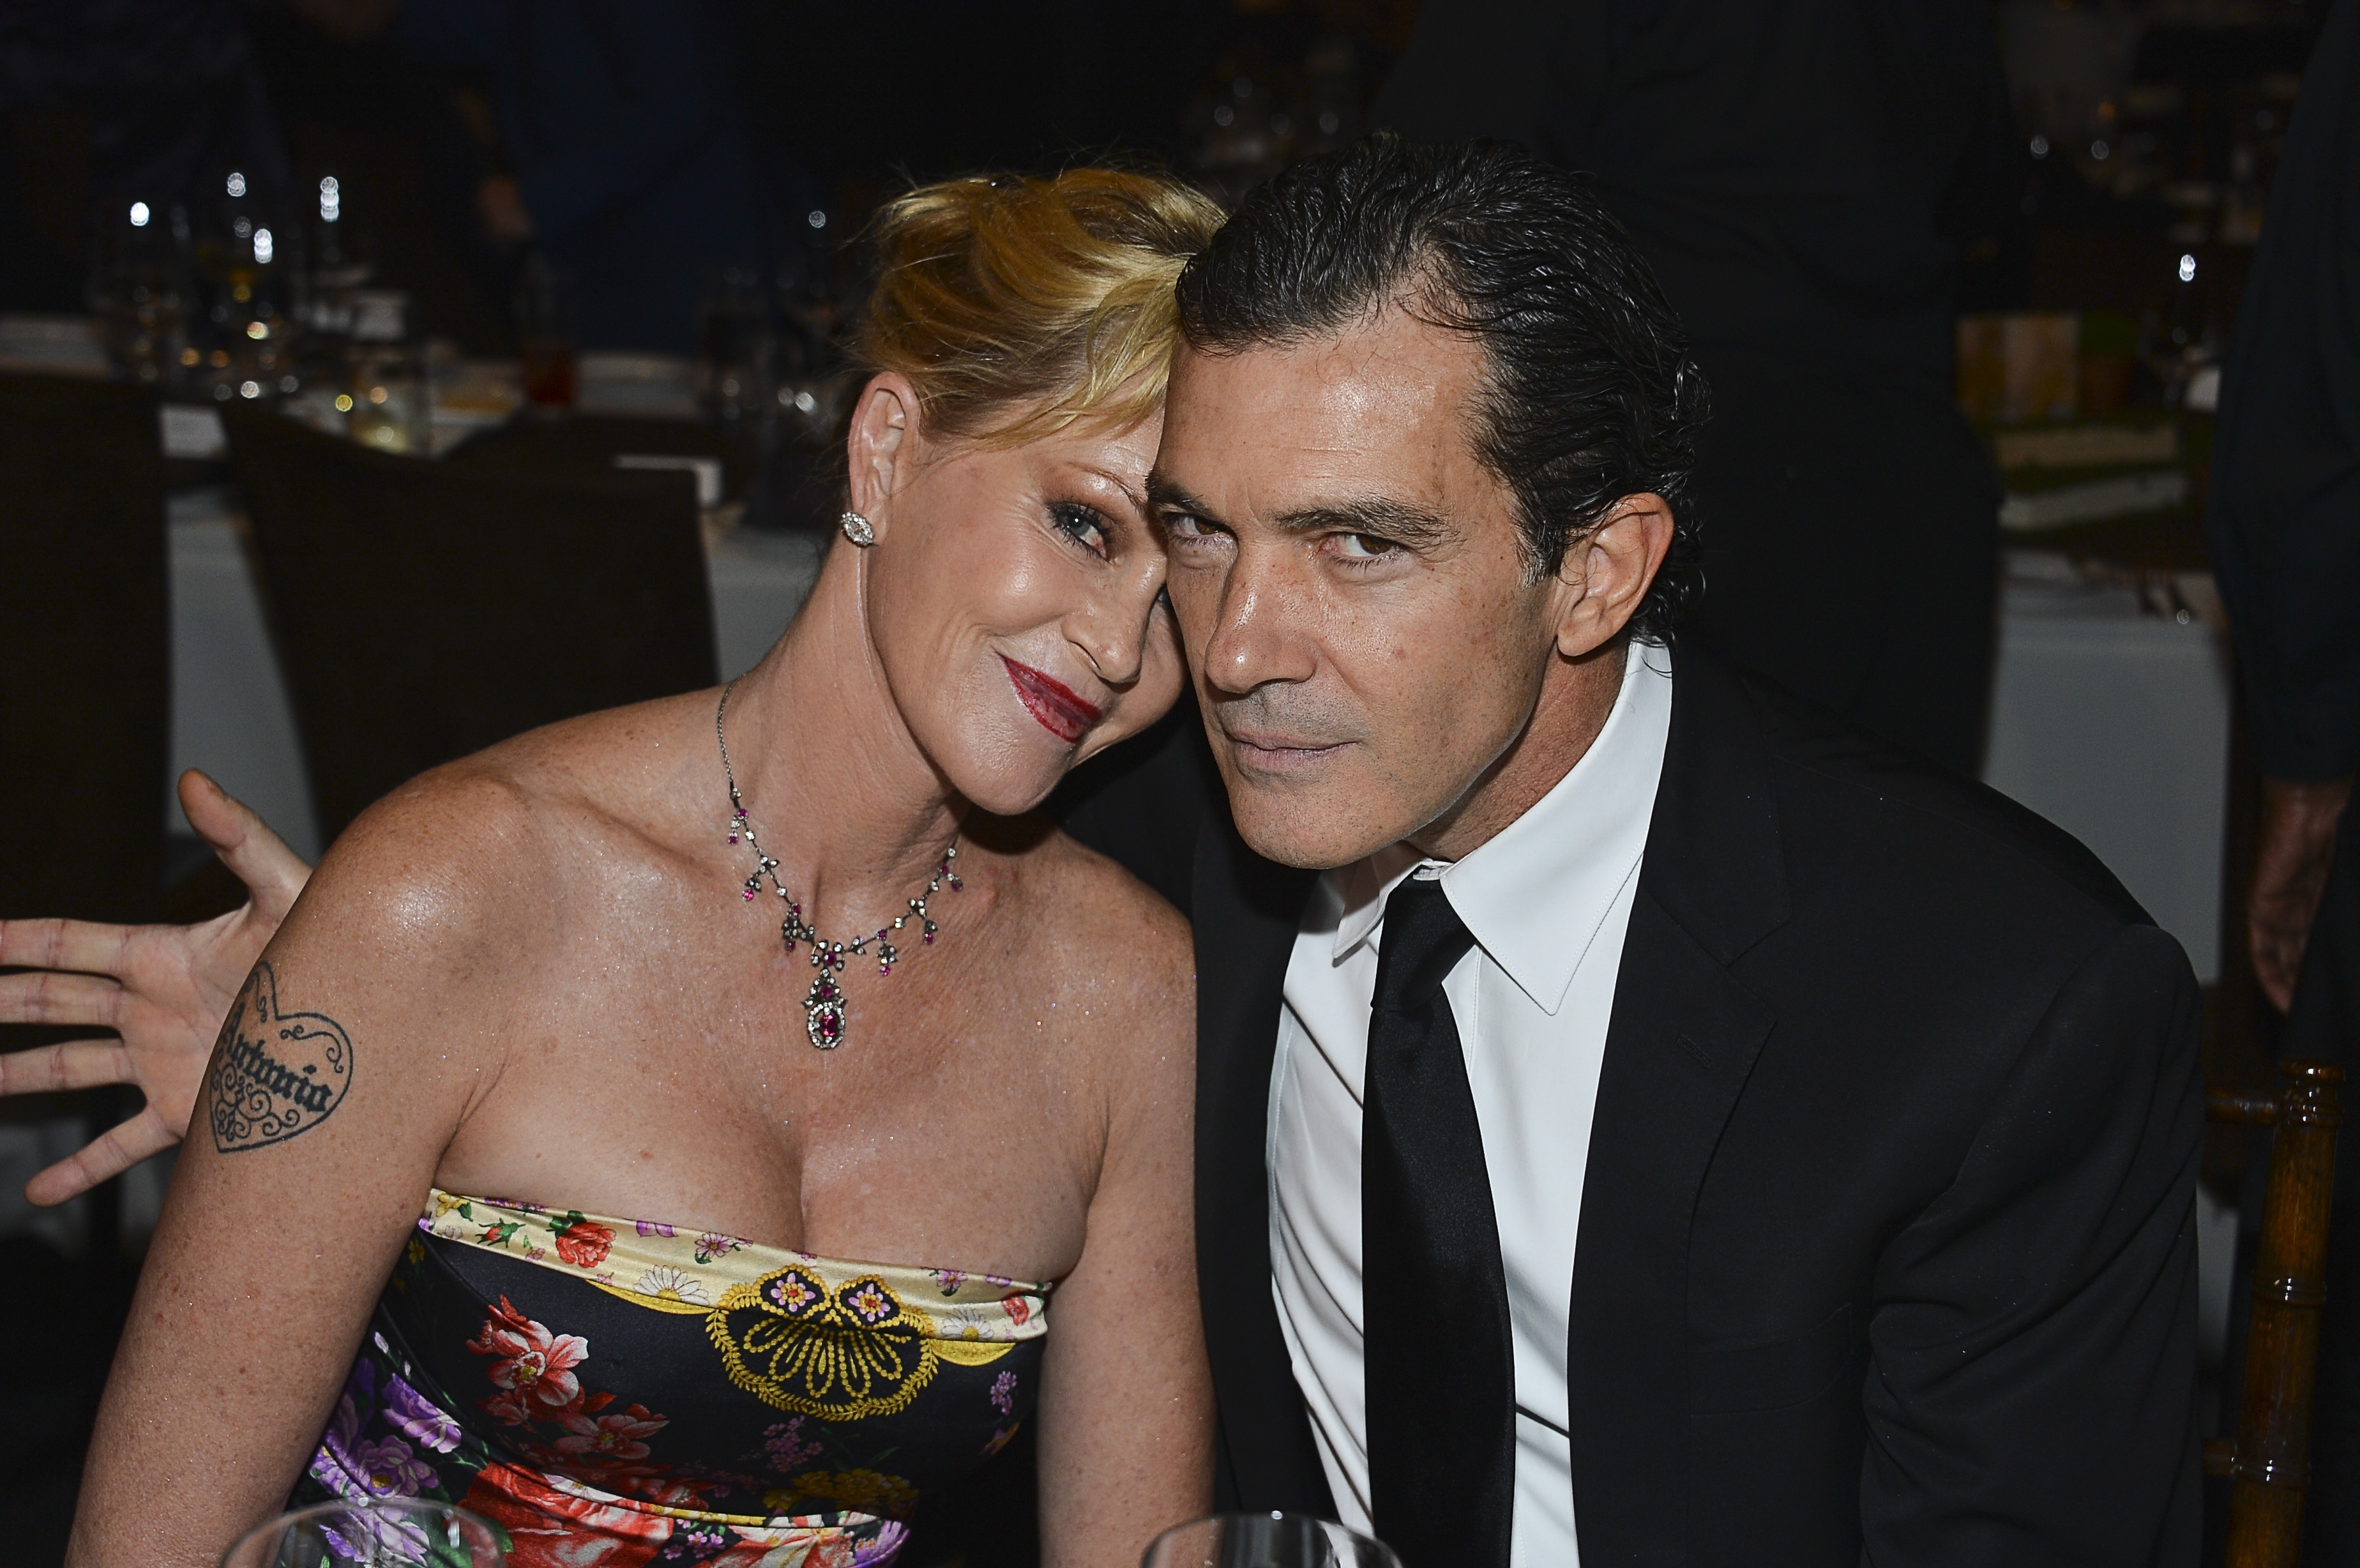 O ator Antonio Banderas e a atriz Melanie Griffith (Foto: Getty Images)